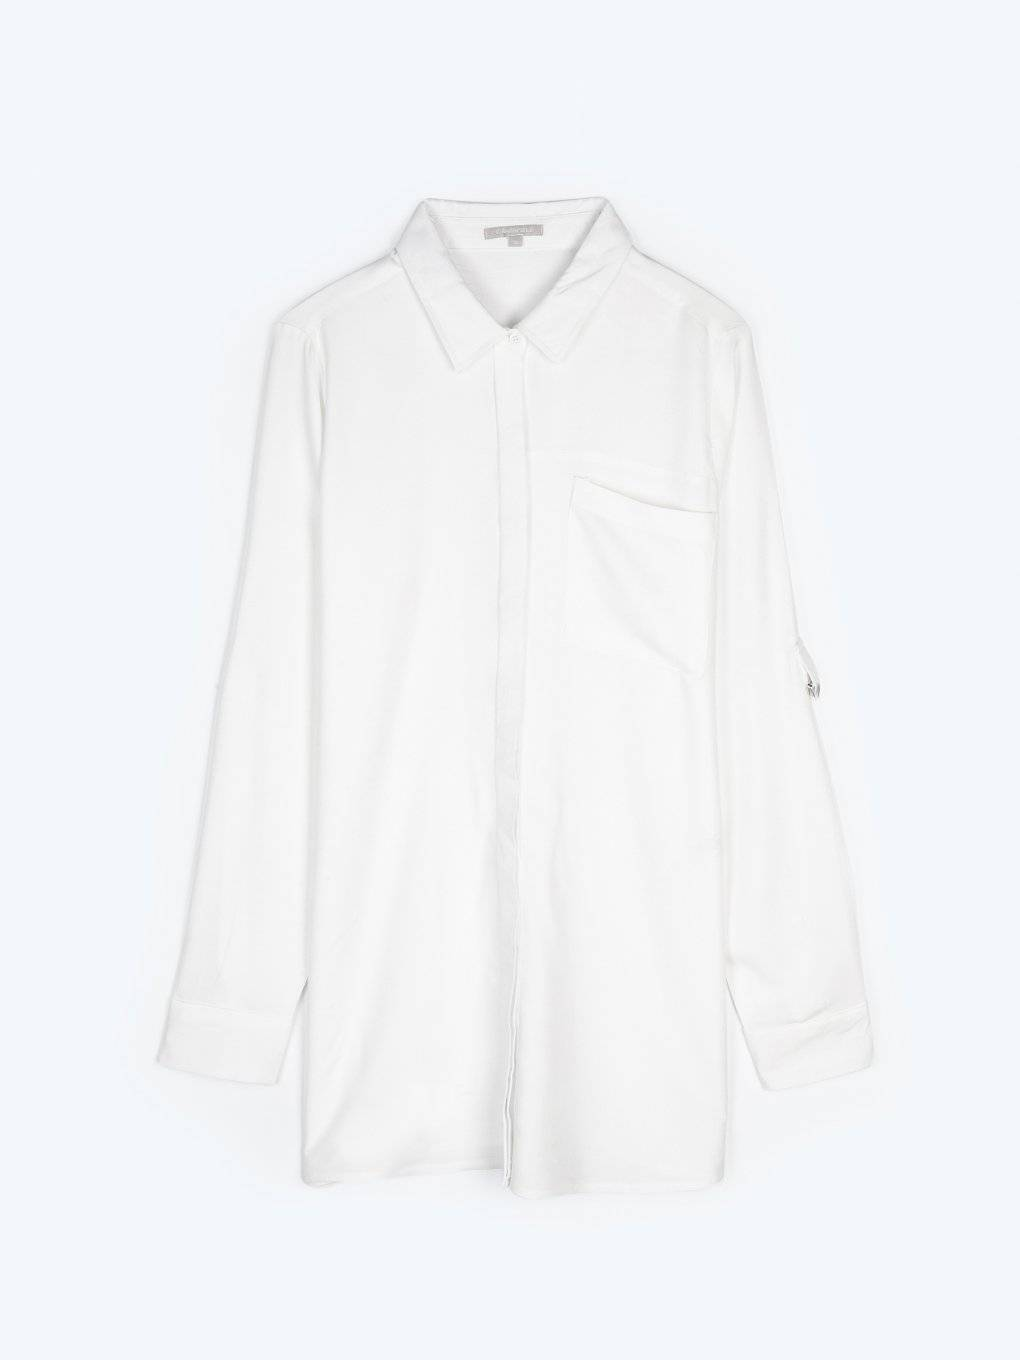 Longline viscose shirt with roll up sleeves